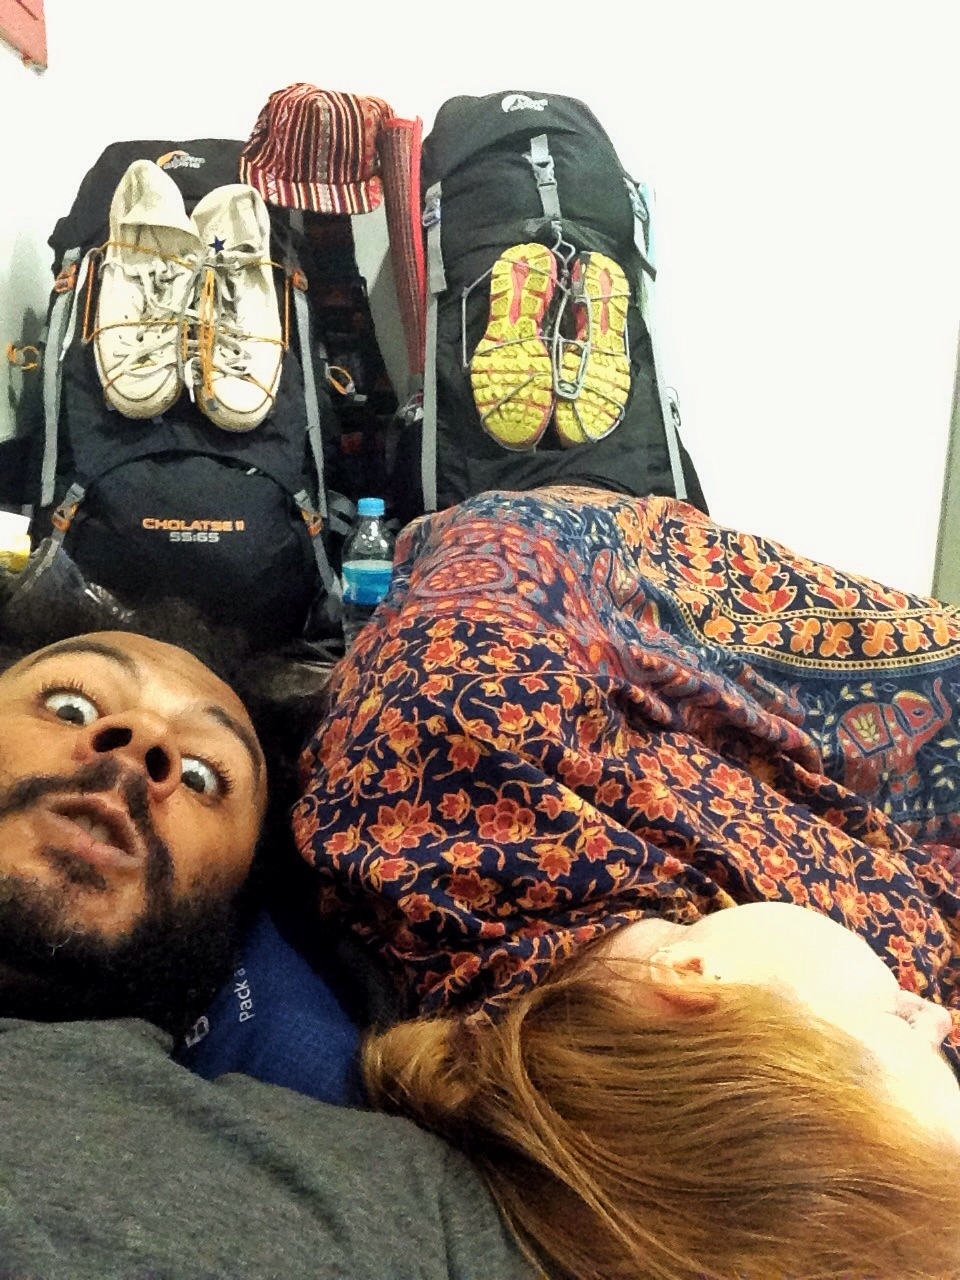 Our makeshift bed for the night in some dreary corner of Bogota airport